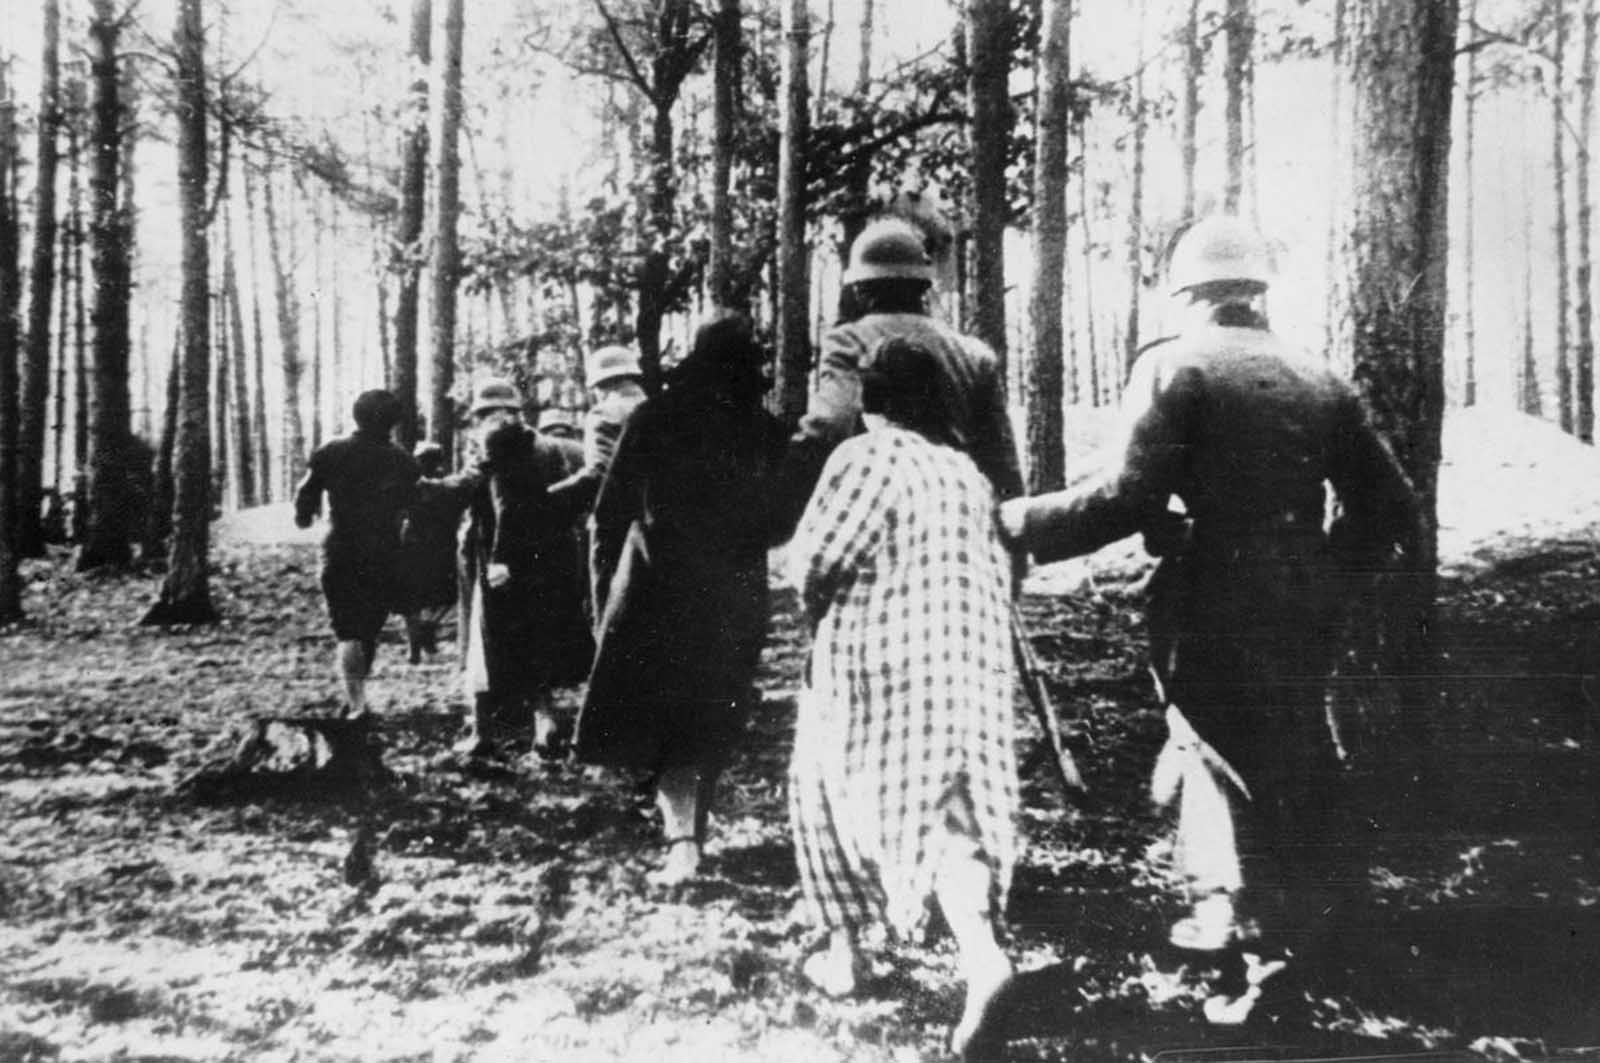 Polish women are led through woods to their executions by German soldiers sometime in 1941.